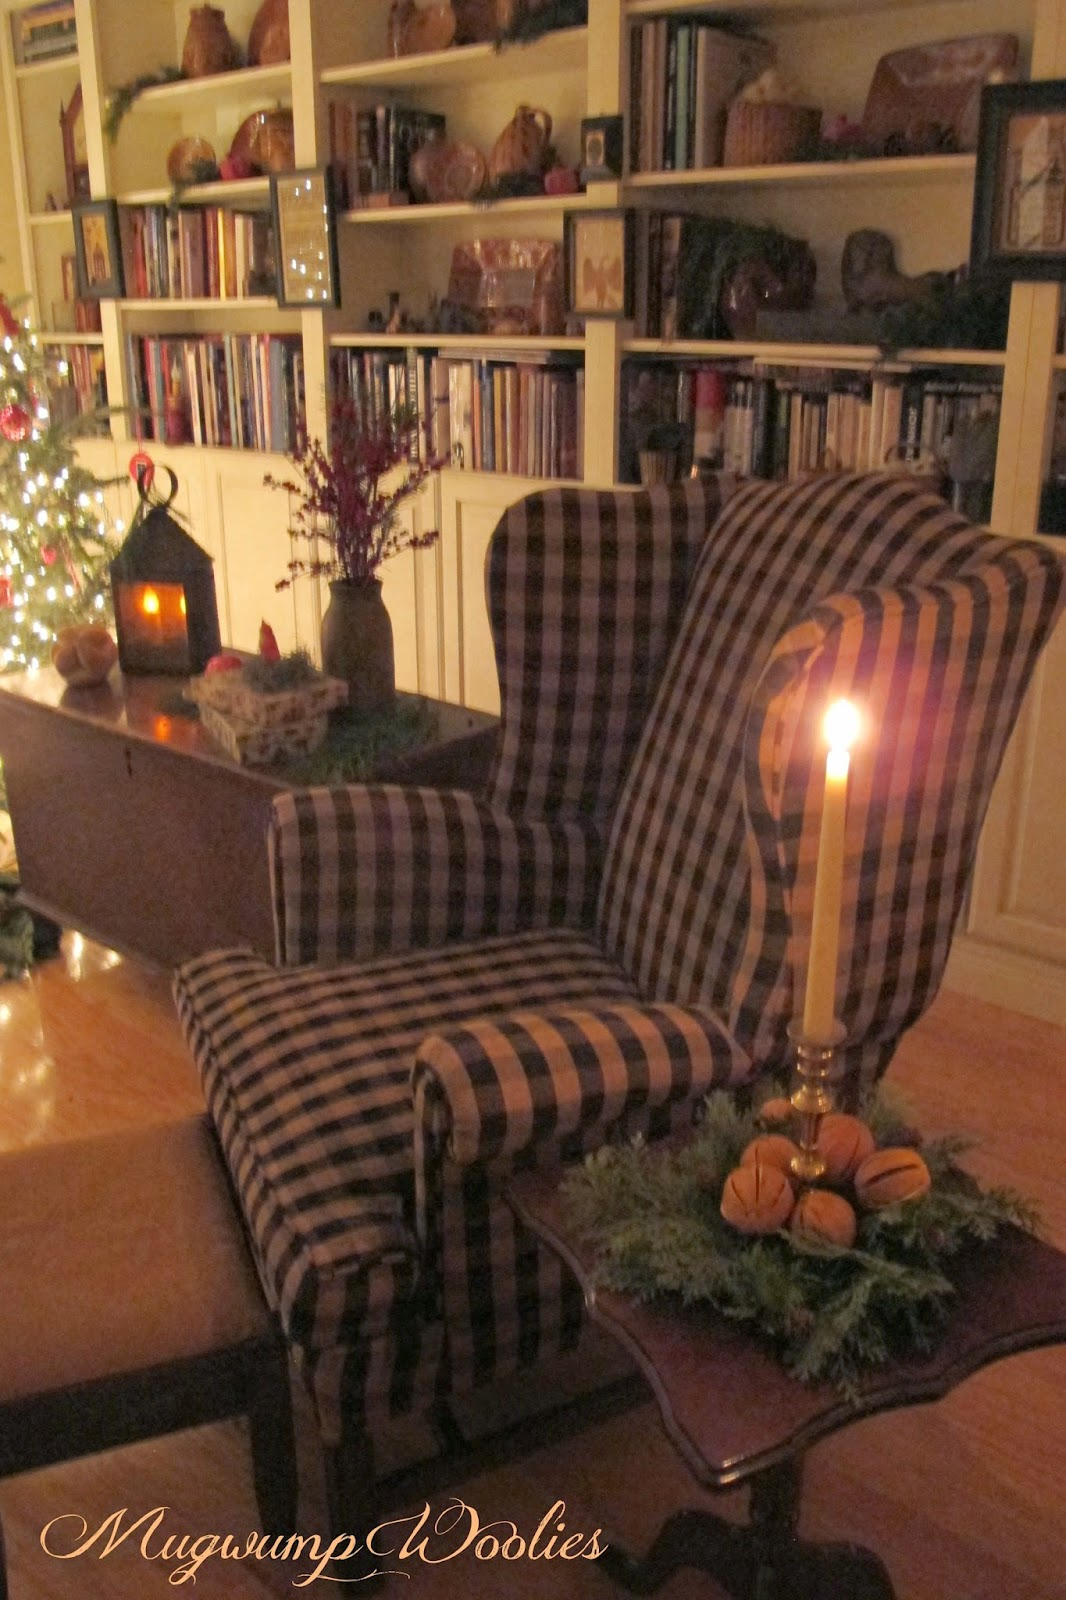 Decor Ideas For Living Rooms: Mugwump Woolies: Bits Of Christmas And Candlelight